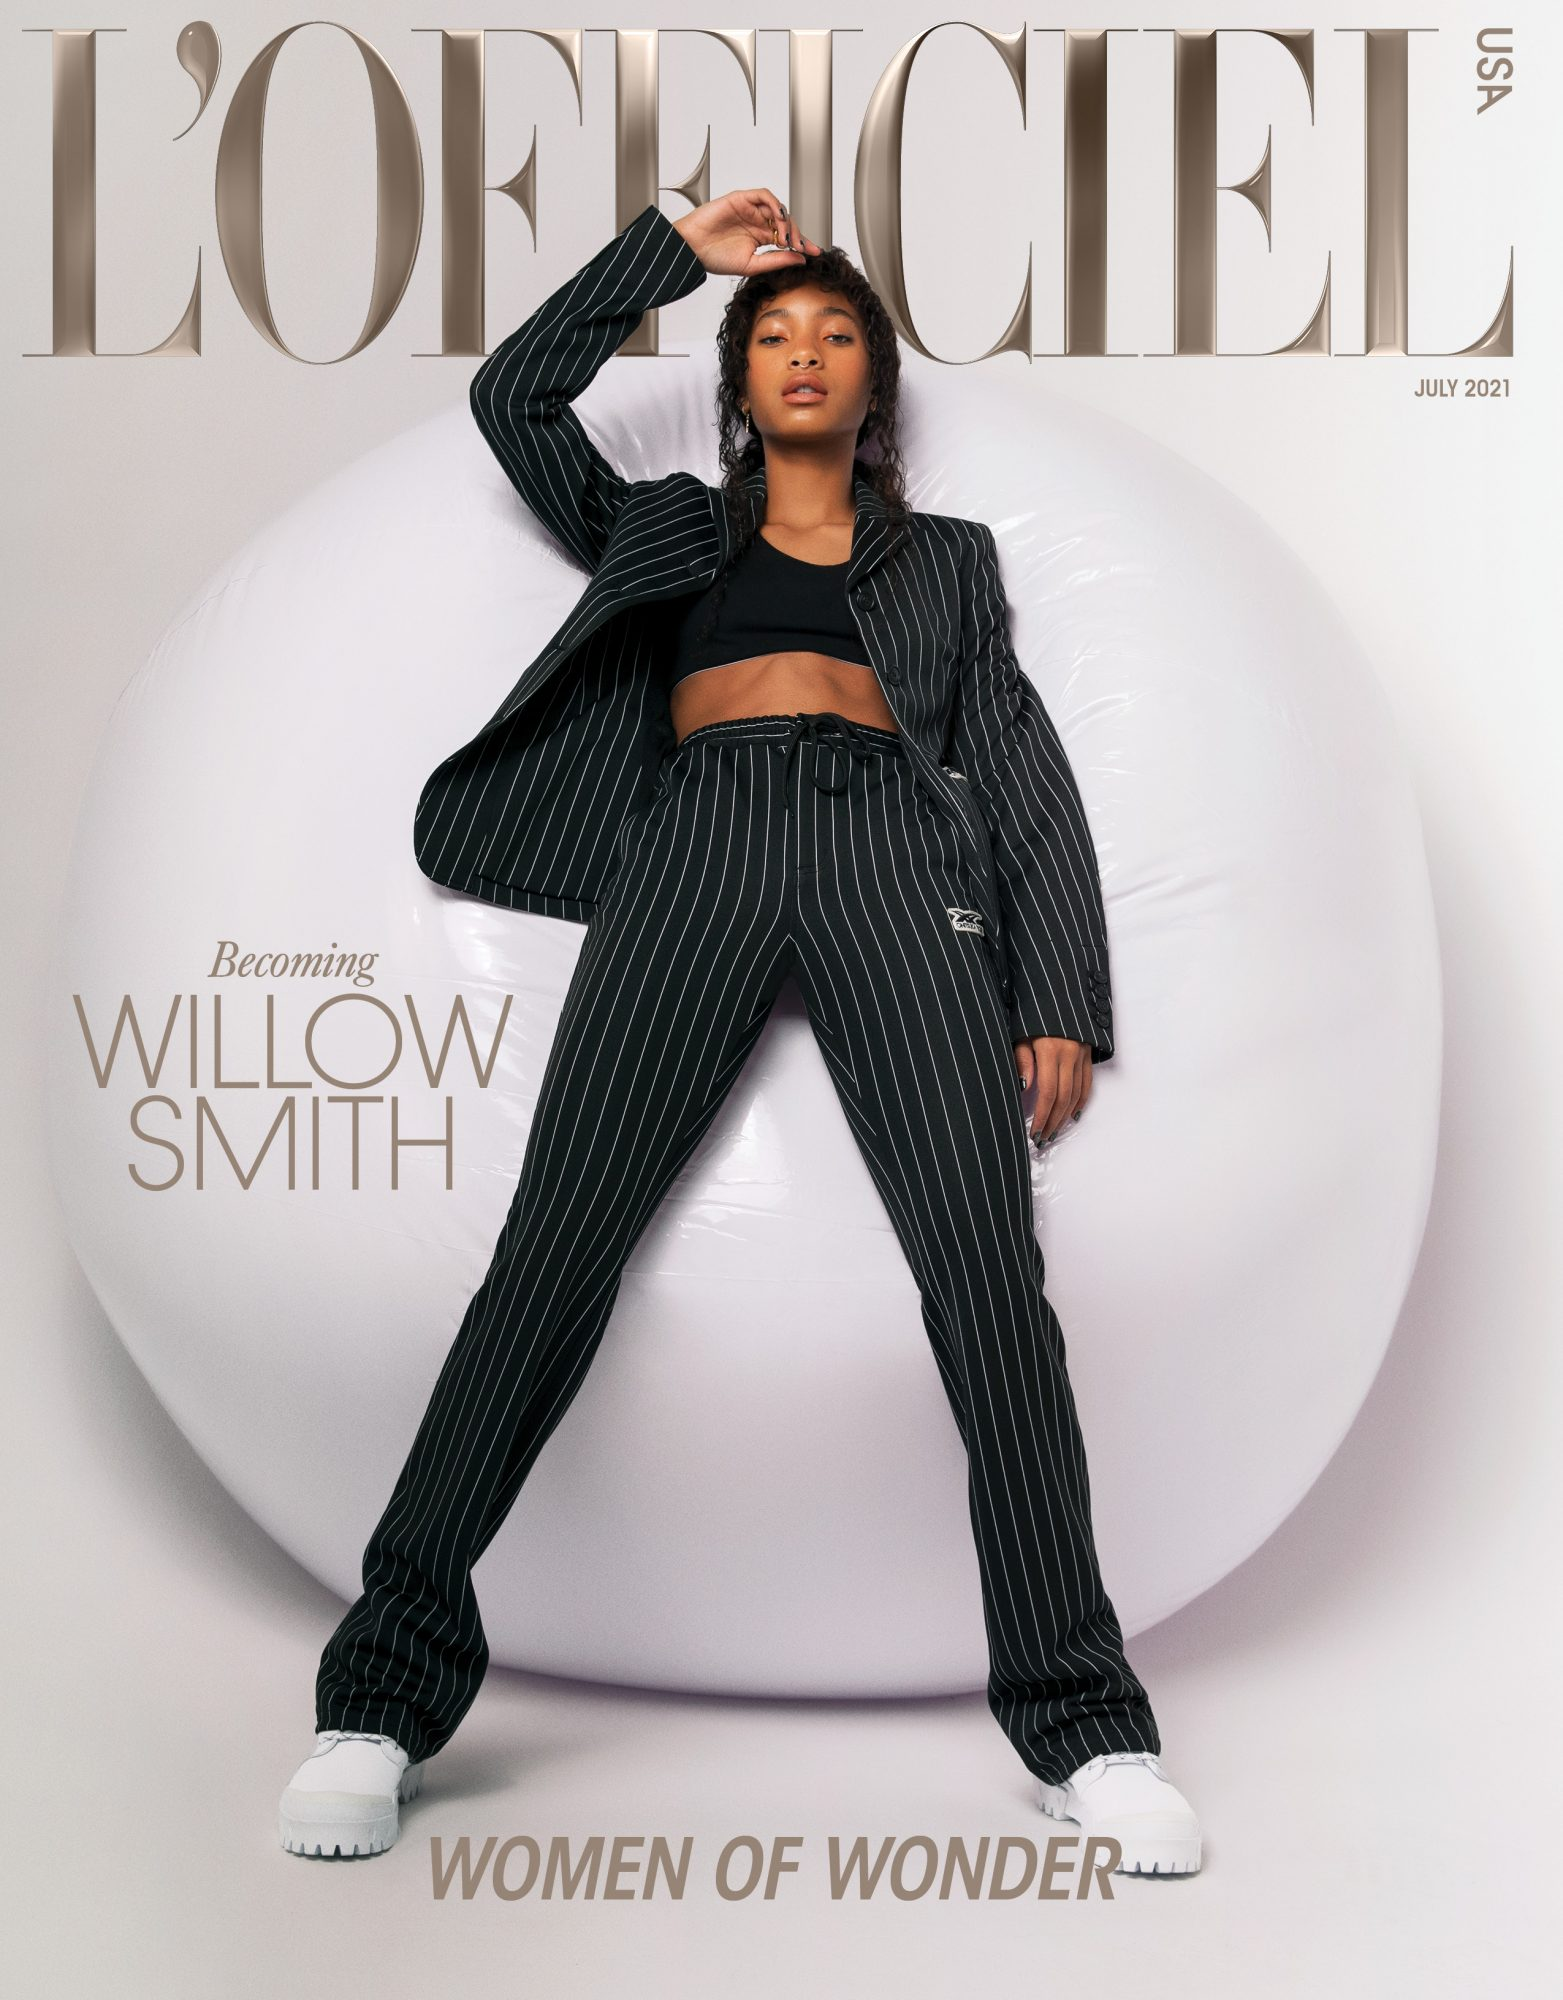 Willow Smith for L'Officiel